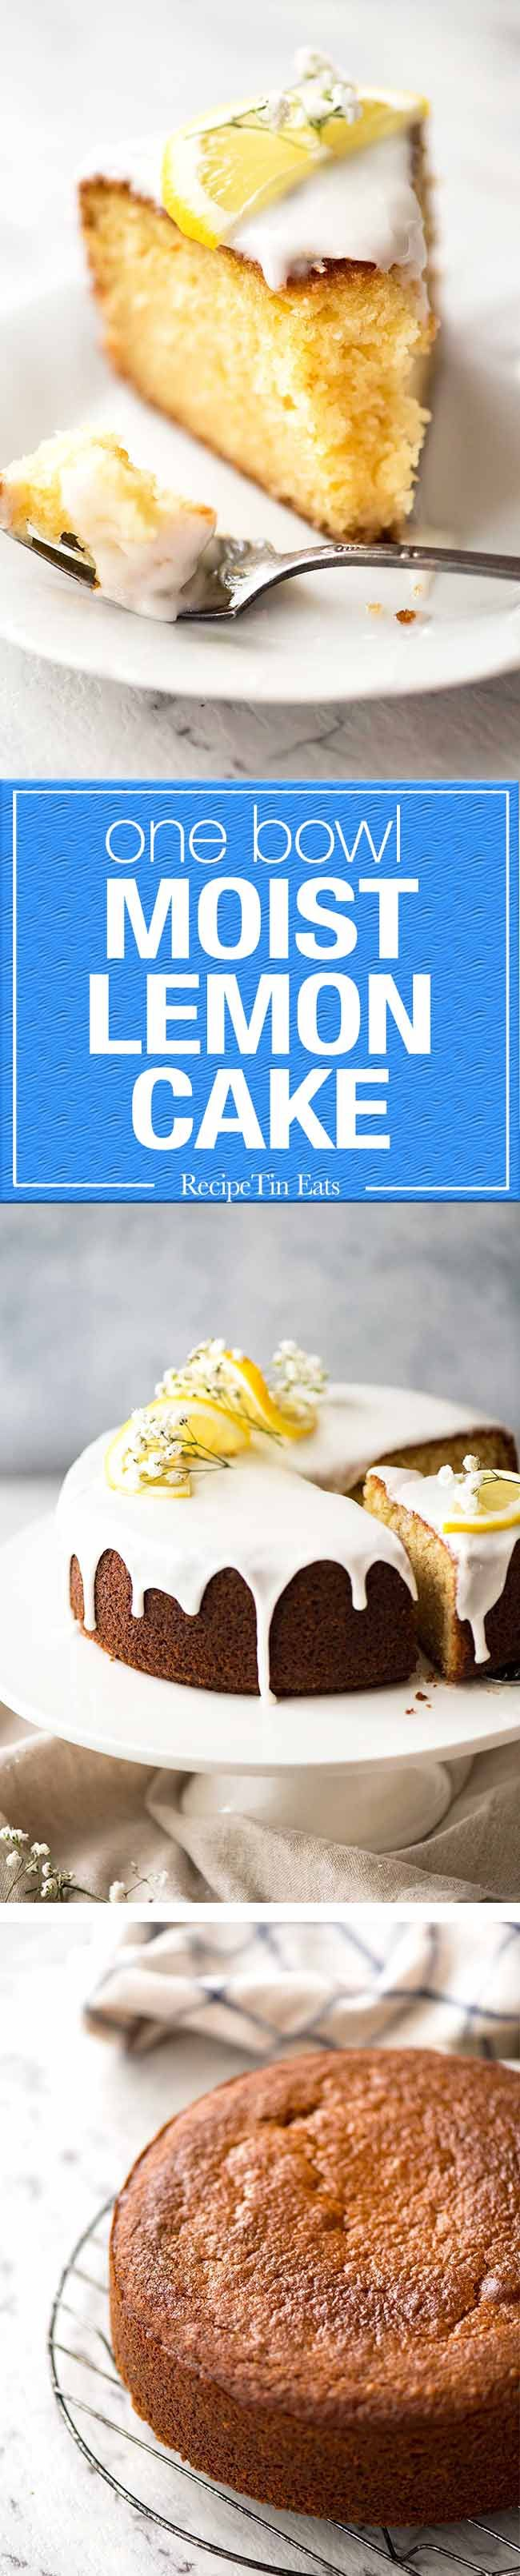 A delightful, simple Lemon Cake for afternoon tea. You'll love the bright lemon flavour, how moist it is and how it requires just ONE BOWL and a whisk!